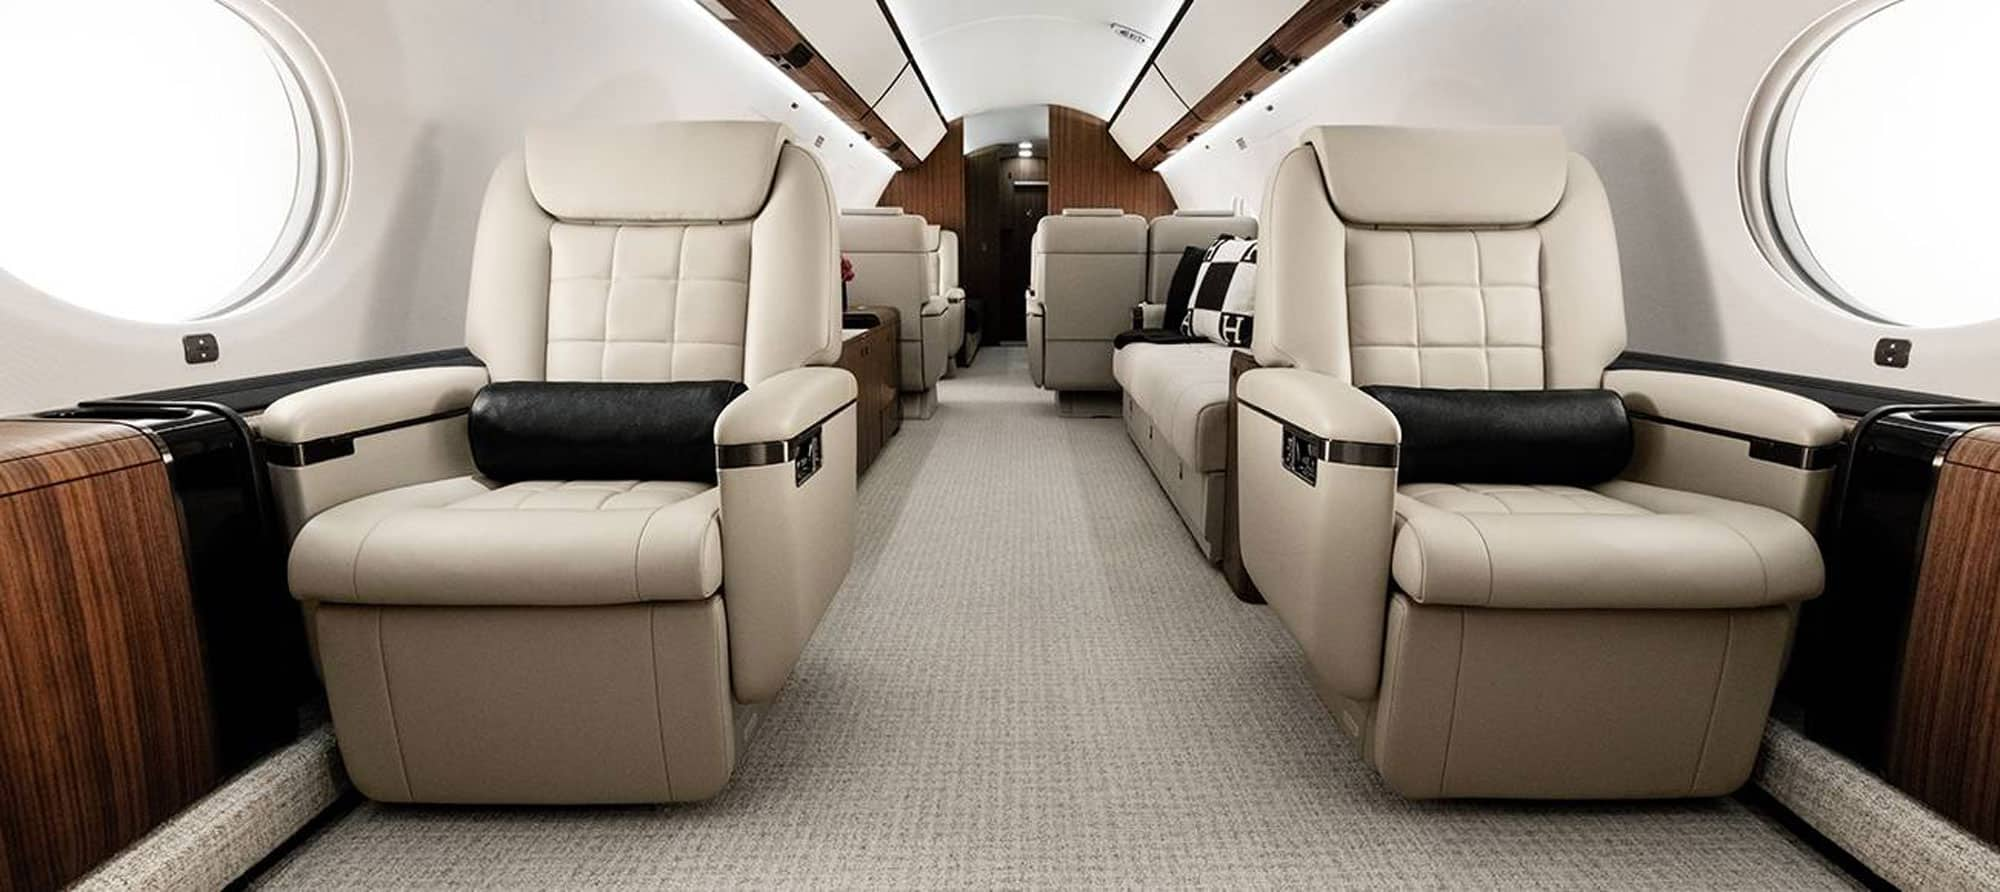 Interior of the Gulfstream G650ER